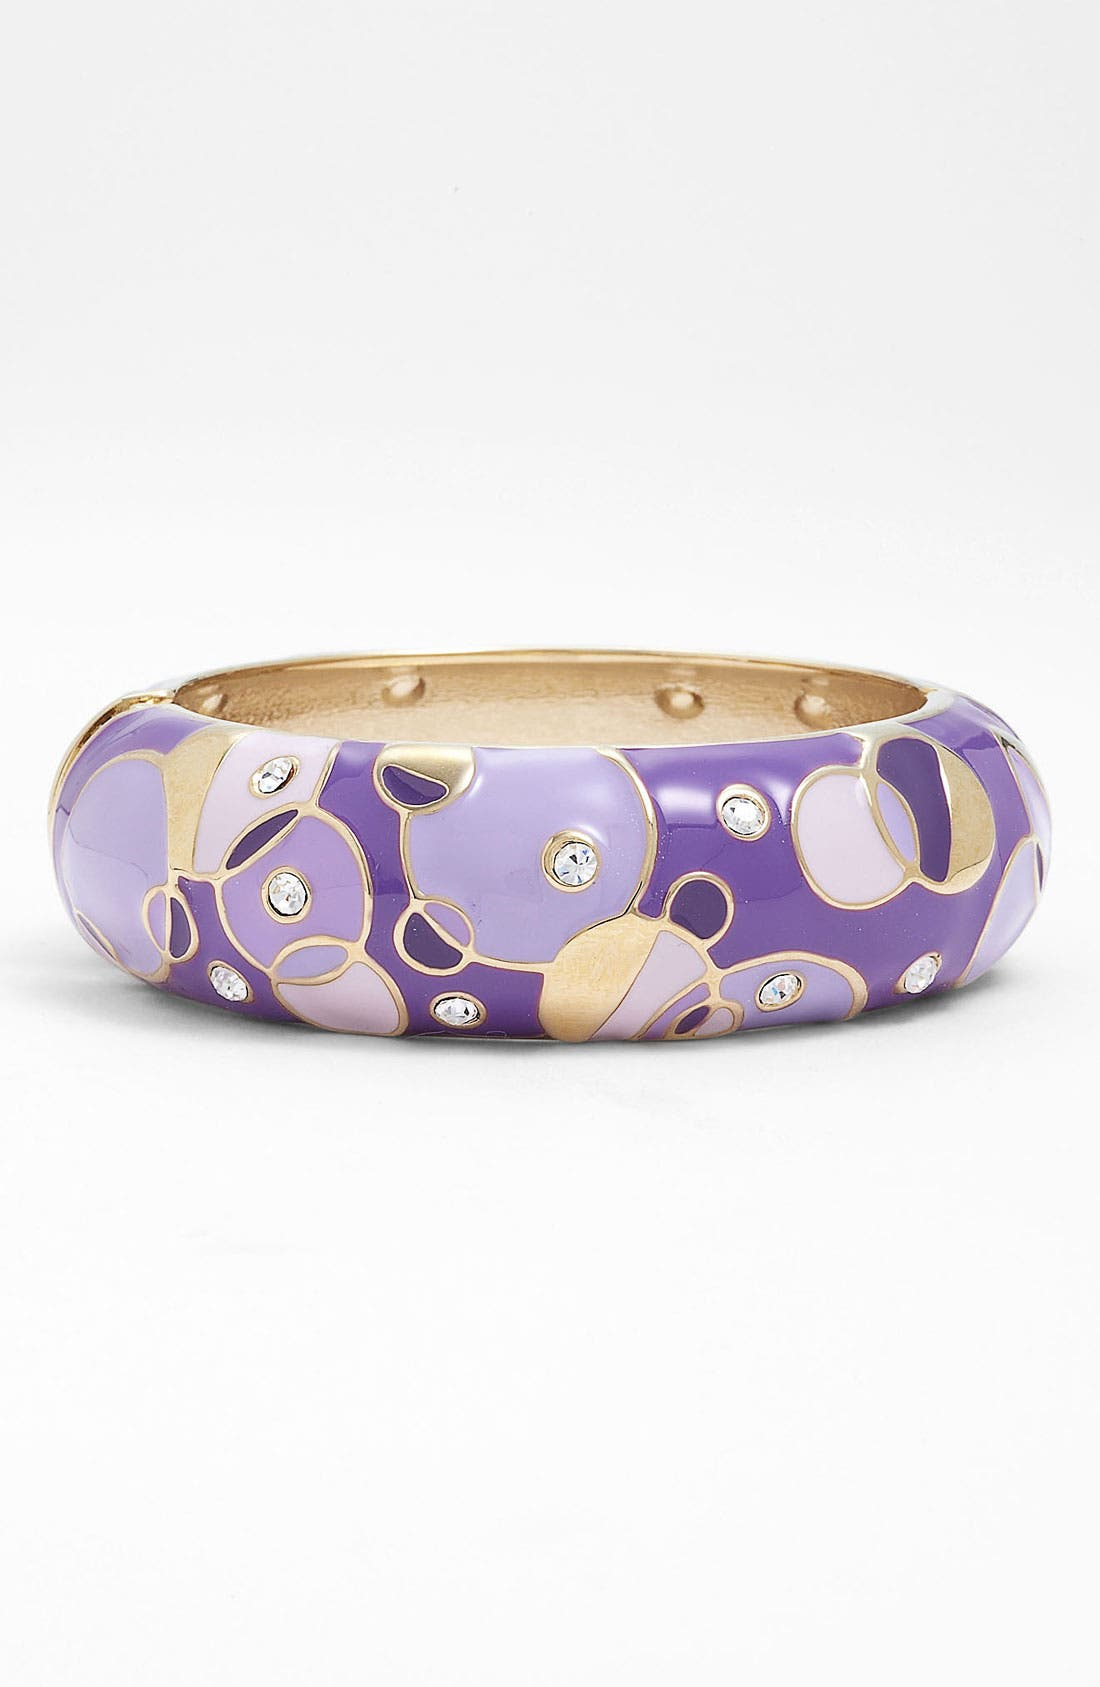 Main Image - Sequin 'Kandinsky' Large Enamel Bangle